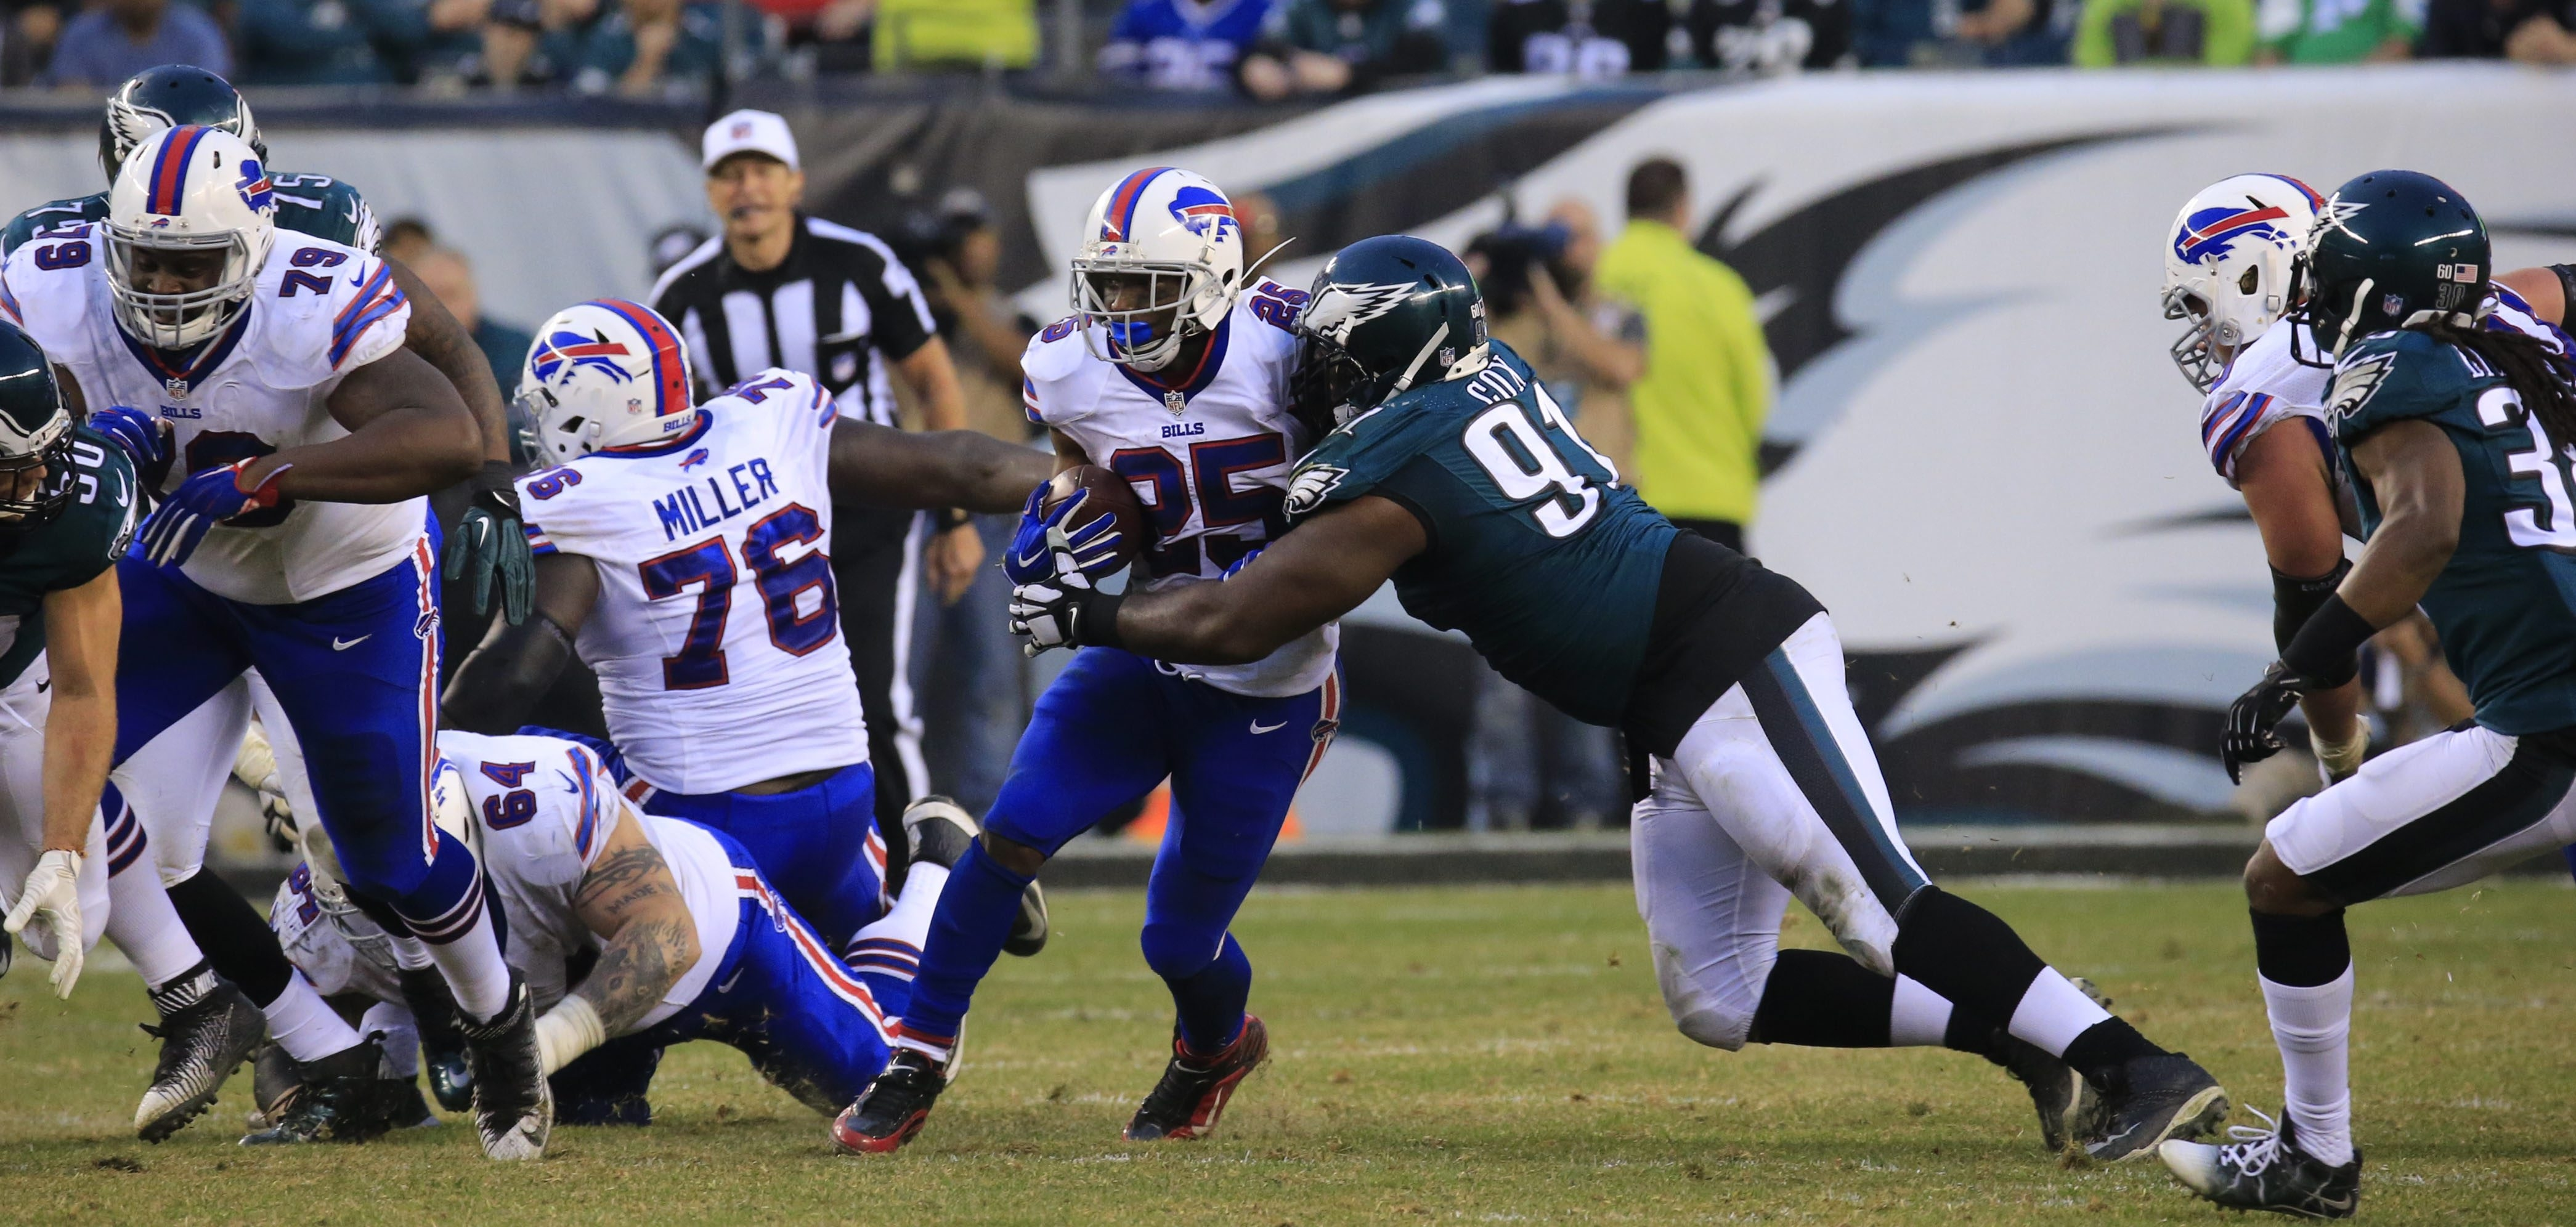 Bills running back LeSean McCoy is wrapped up by Philadelphia Eagles lineman Fletcher Cox during Sunday's game.